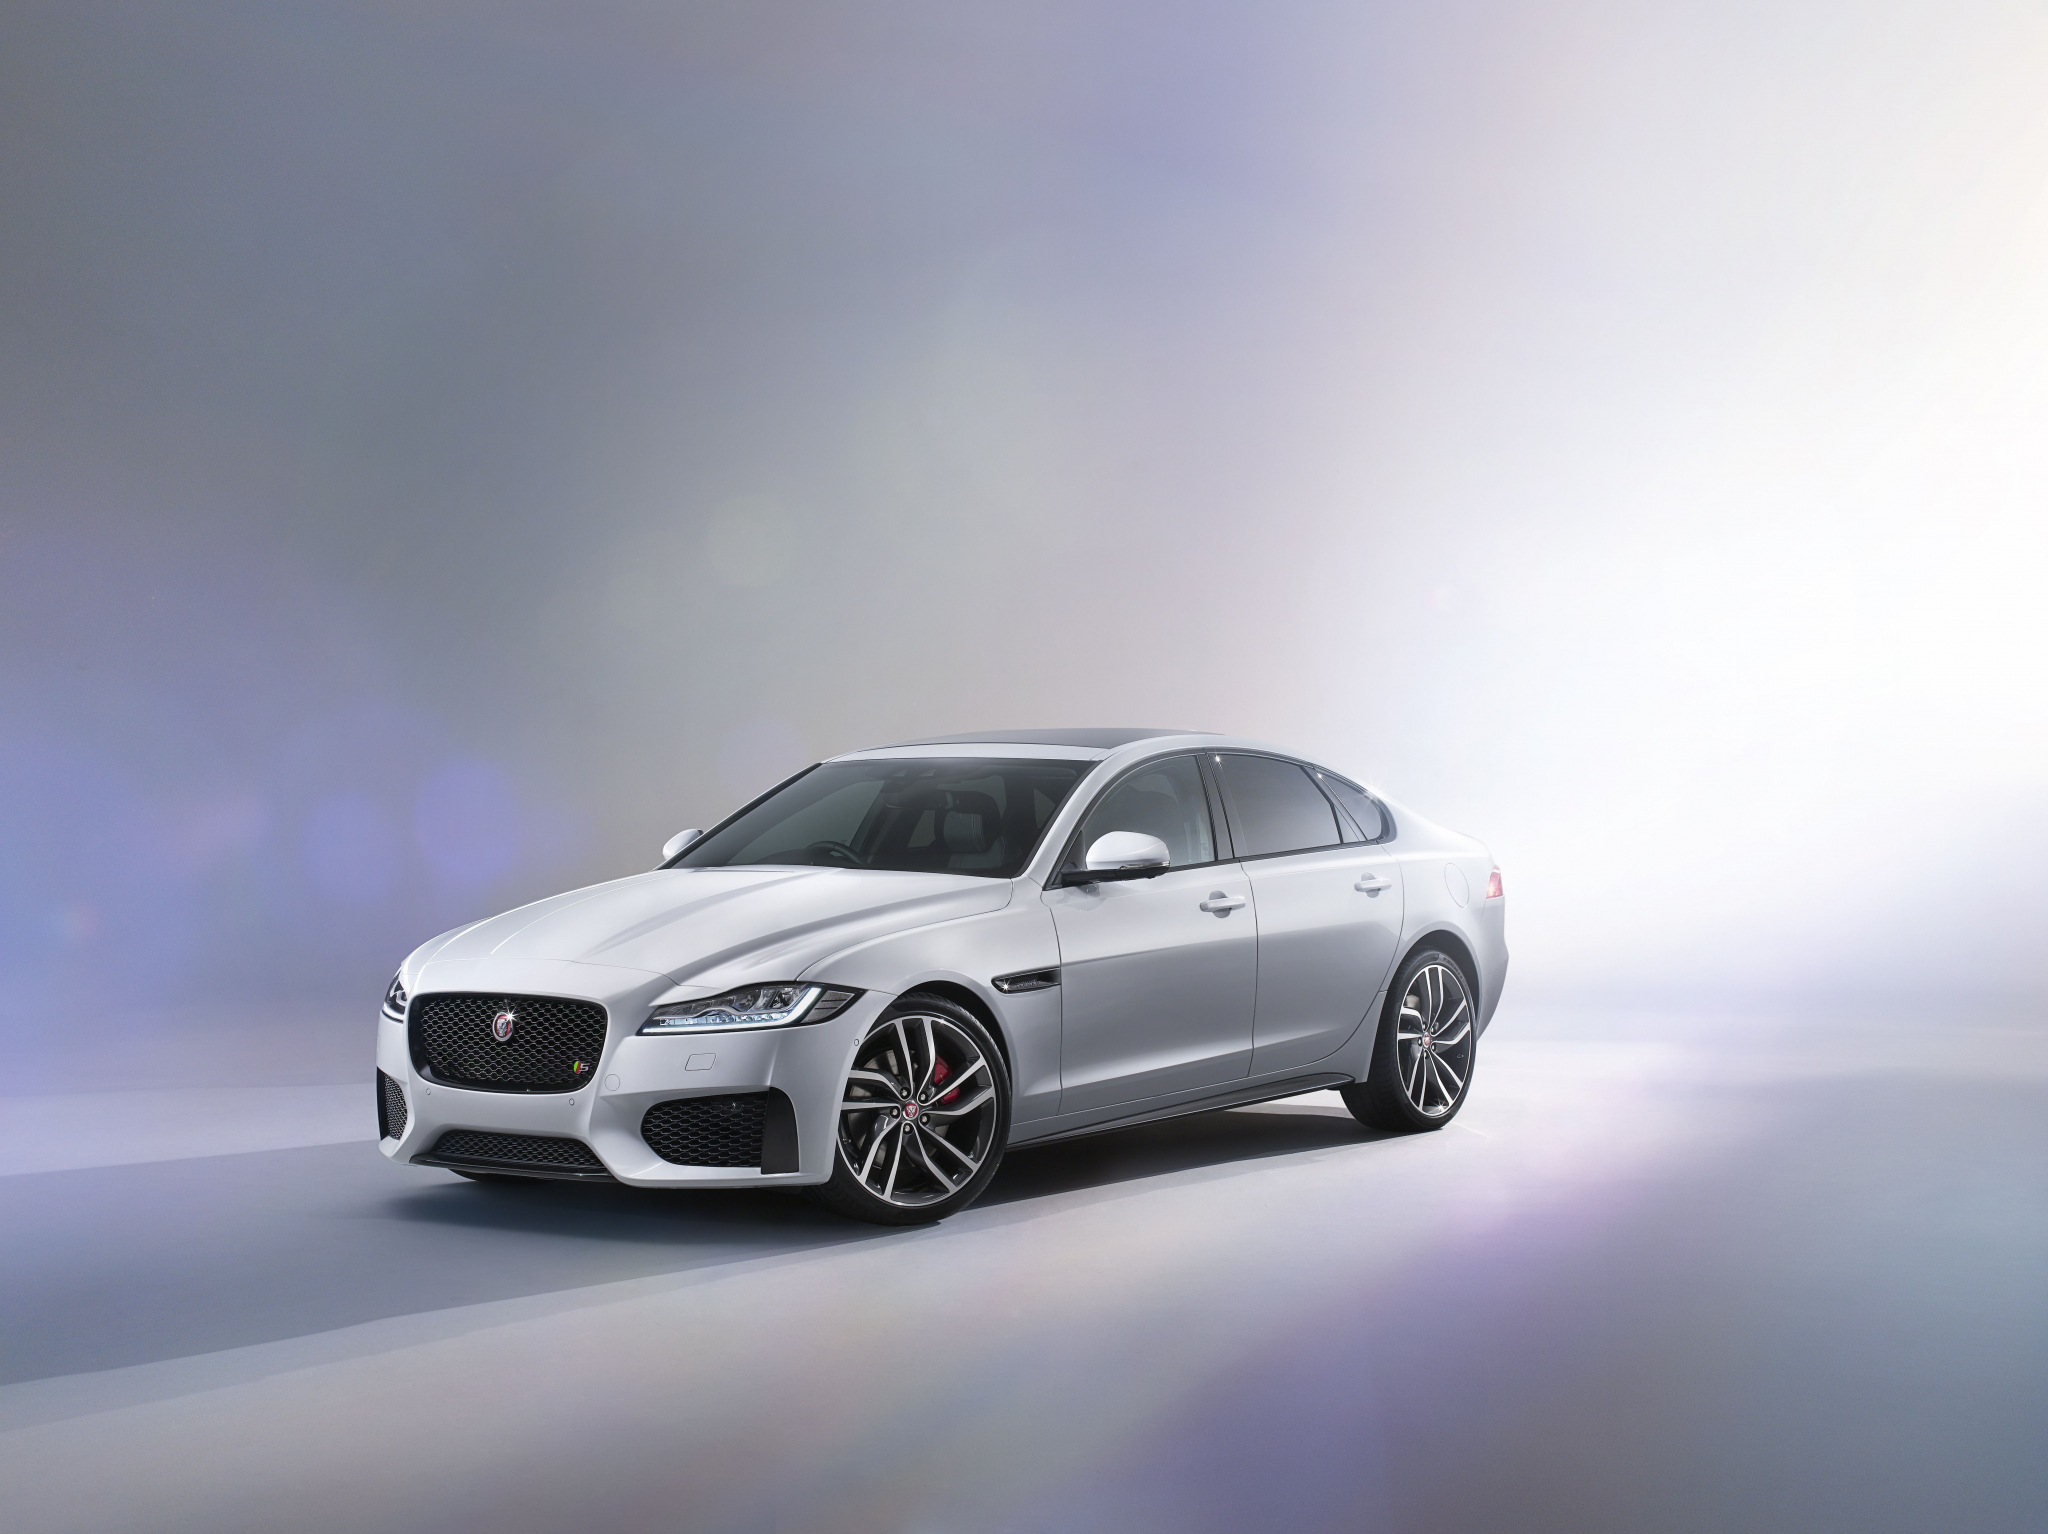 jaguar xf 2015 hd wallpapers free download. Black Bedroom Furniture Sets. Home Design Ideas